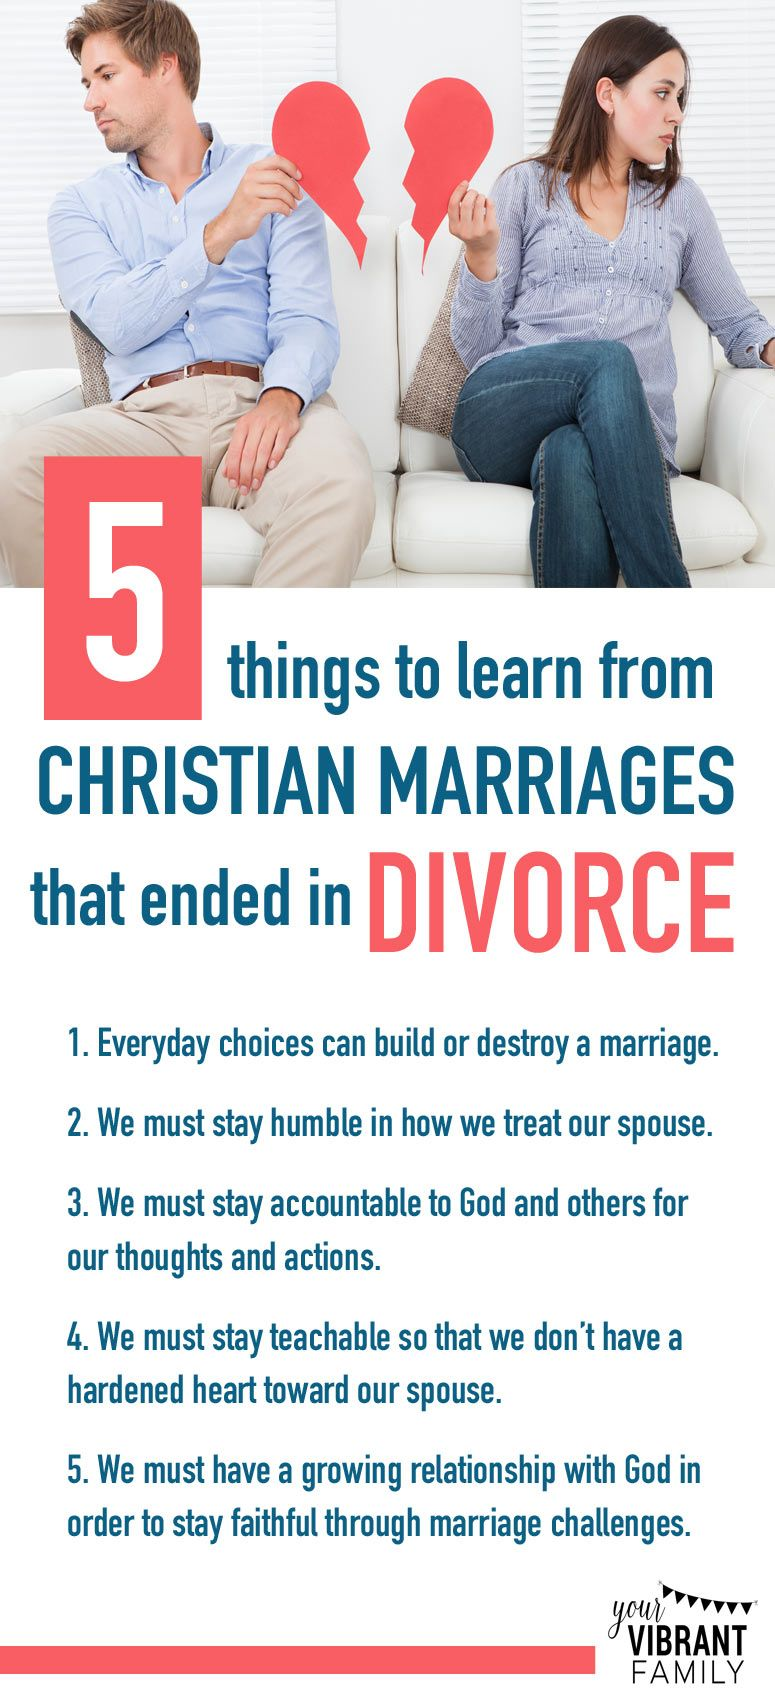 5 Things to Learn from Christian Marriages That Ended in